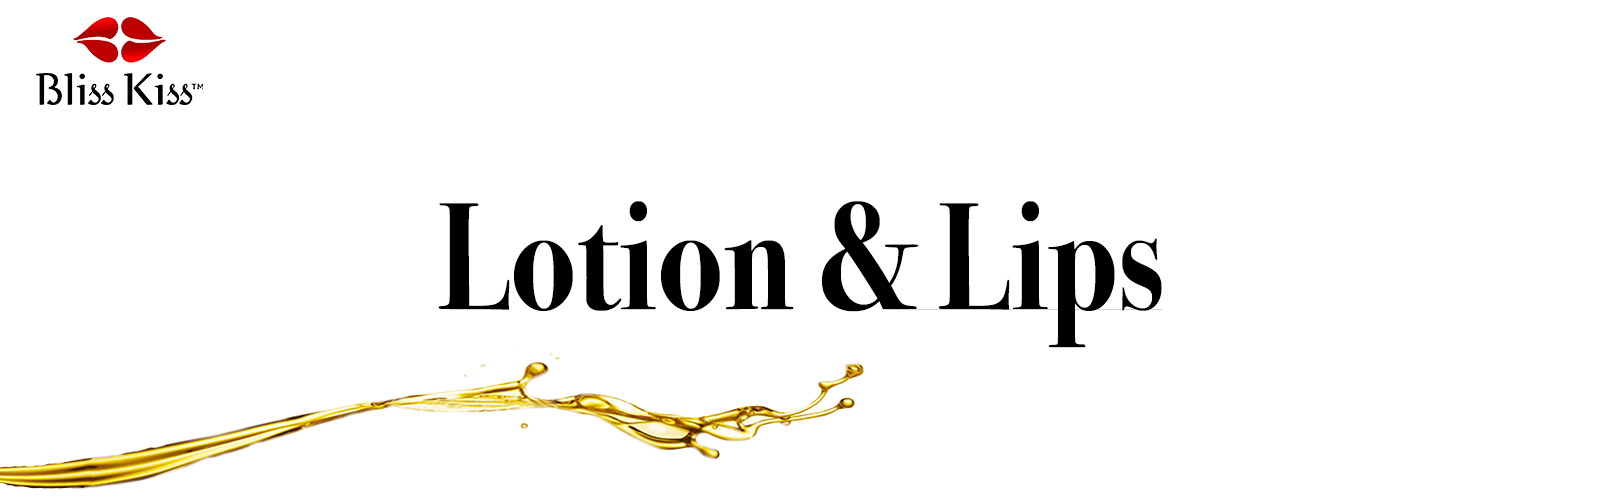 lotion-and-lips-banner.png